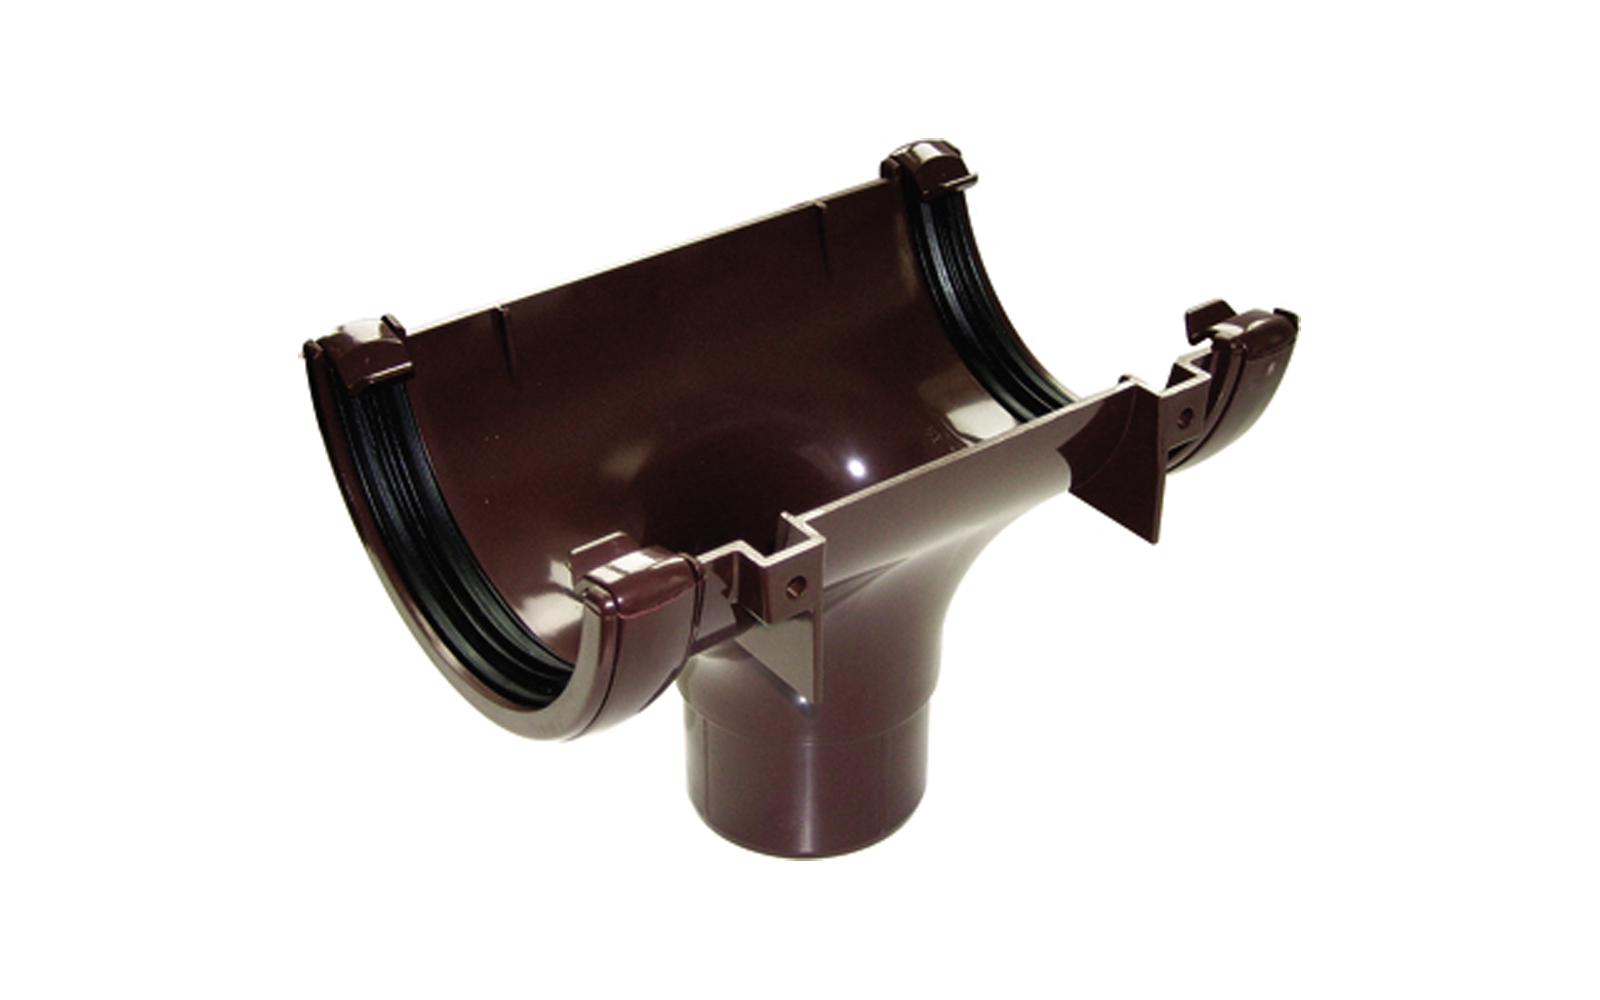 FLOPLAST HALF ROUND GUTTER - RO1 RUNNING OUTLET - BROWN